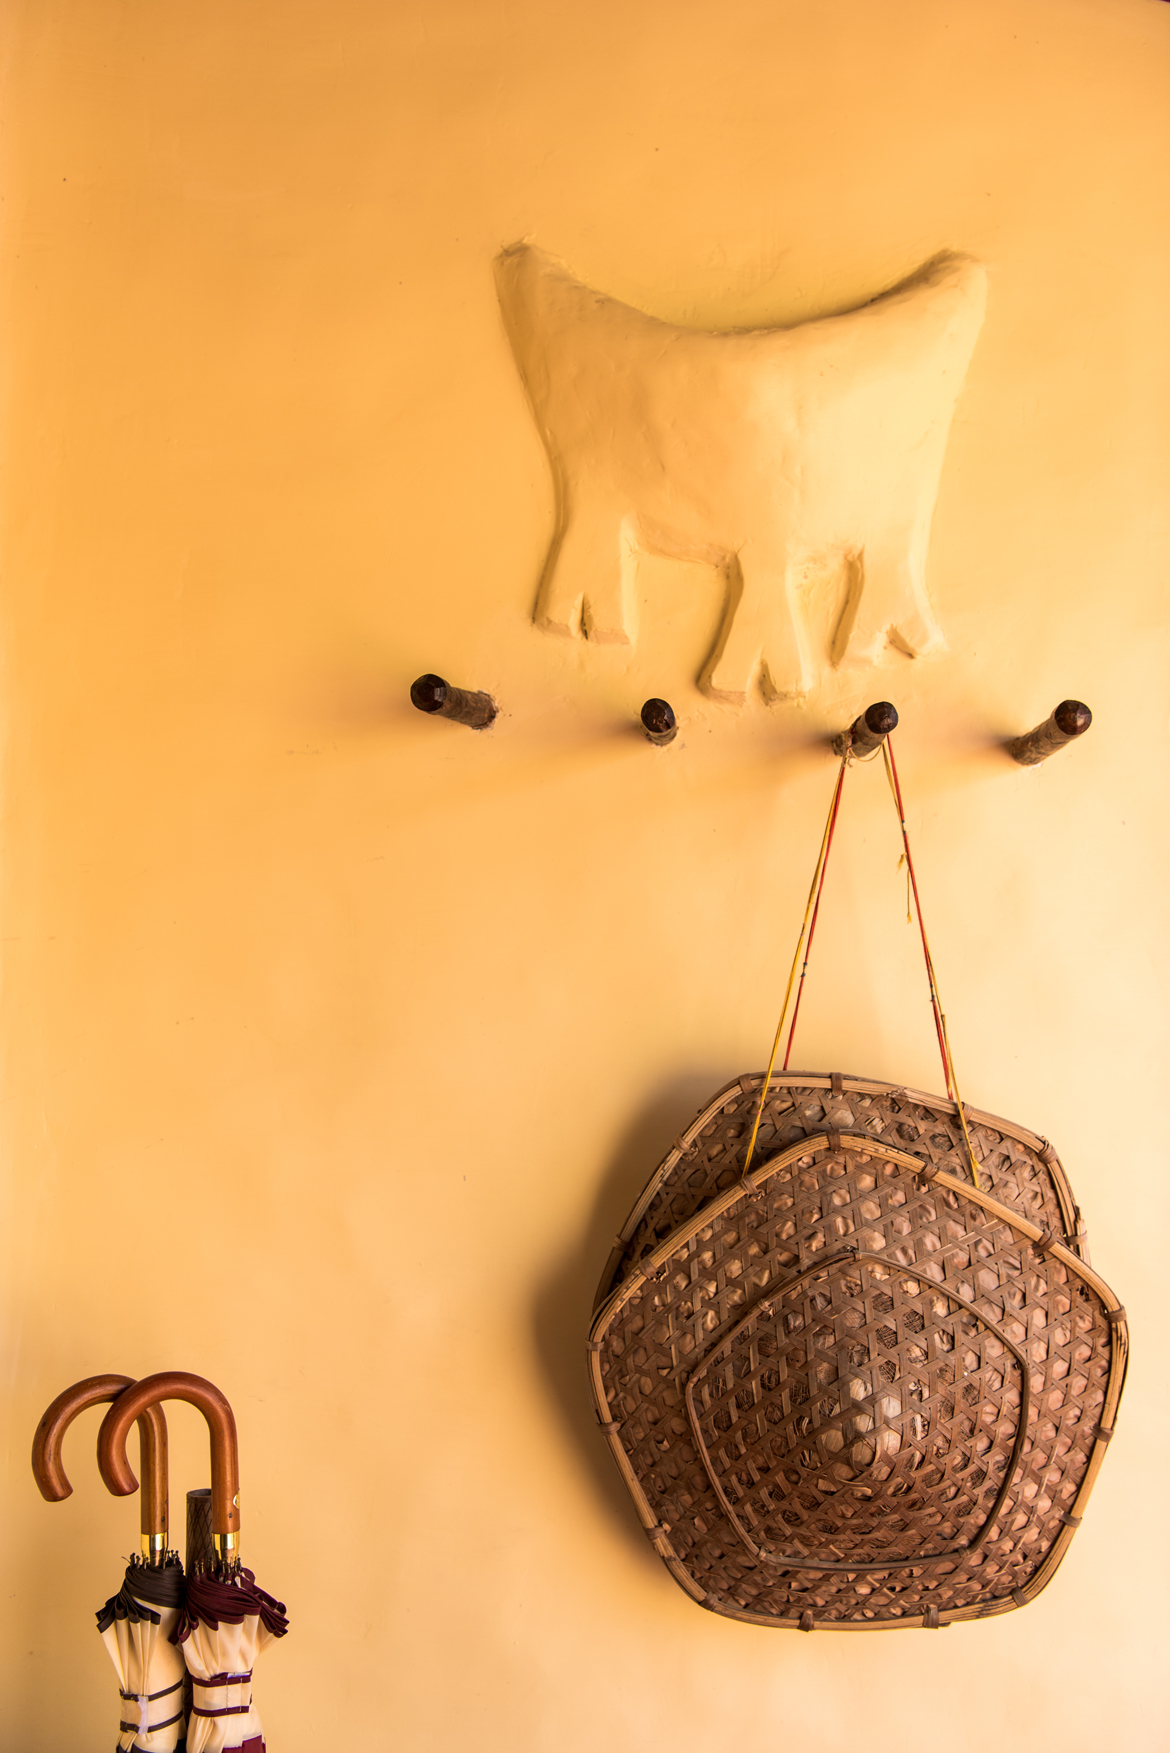 A fine example of traditional embossed clay art on walls at Samode Safari Lodge in Bandhavgarh